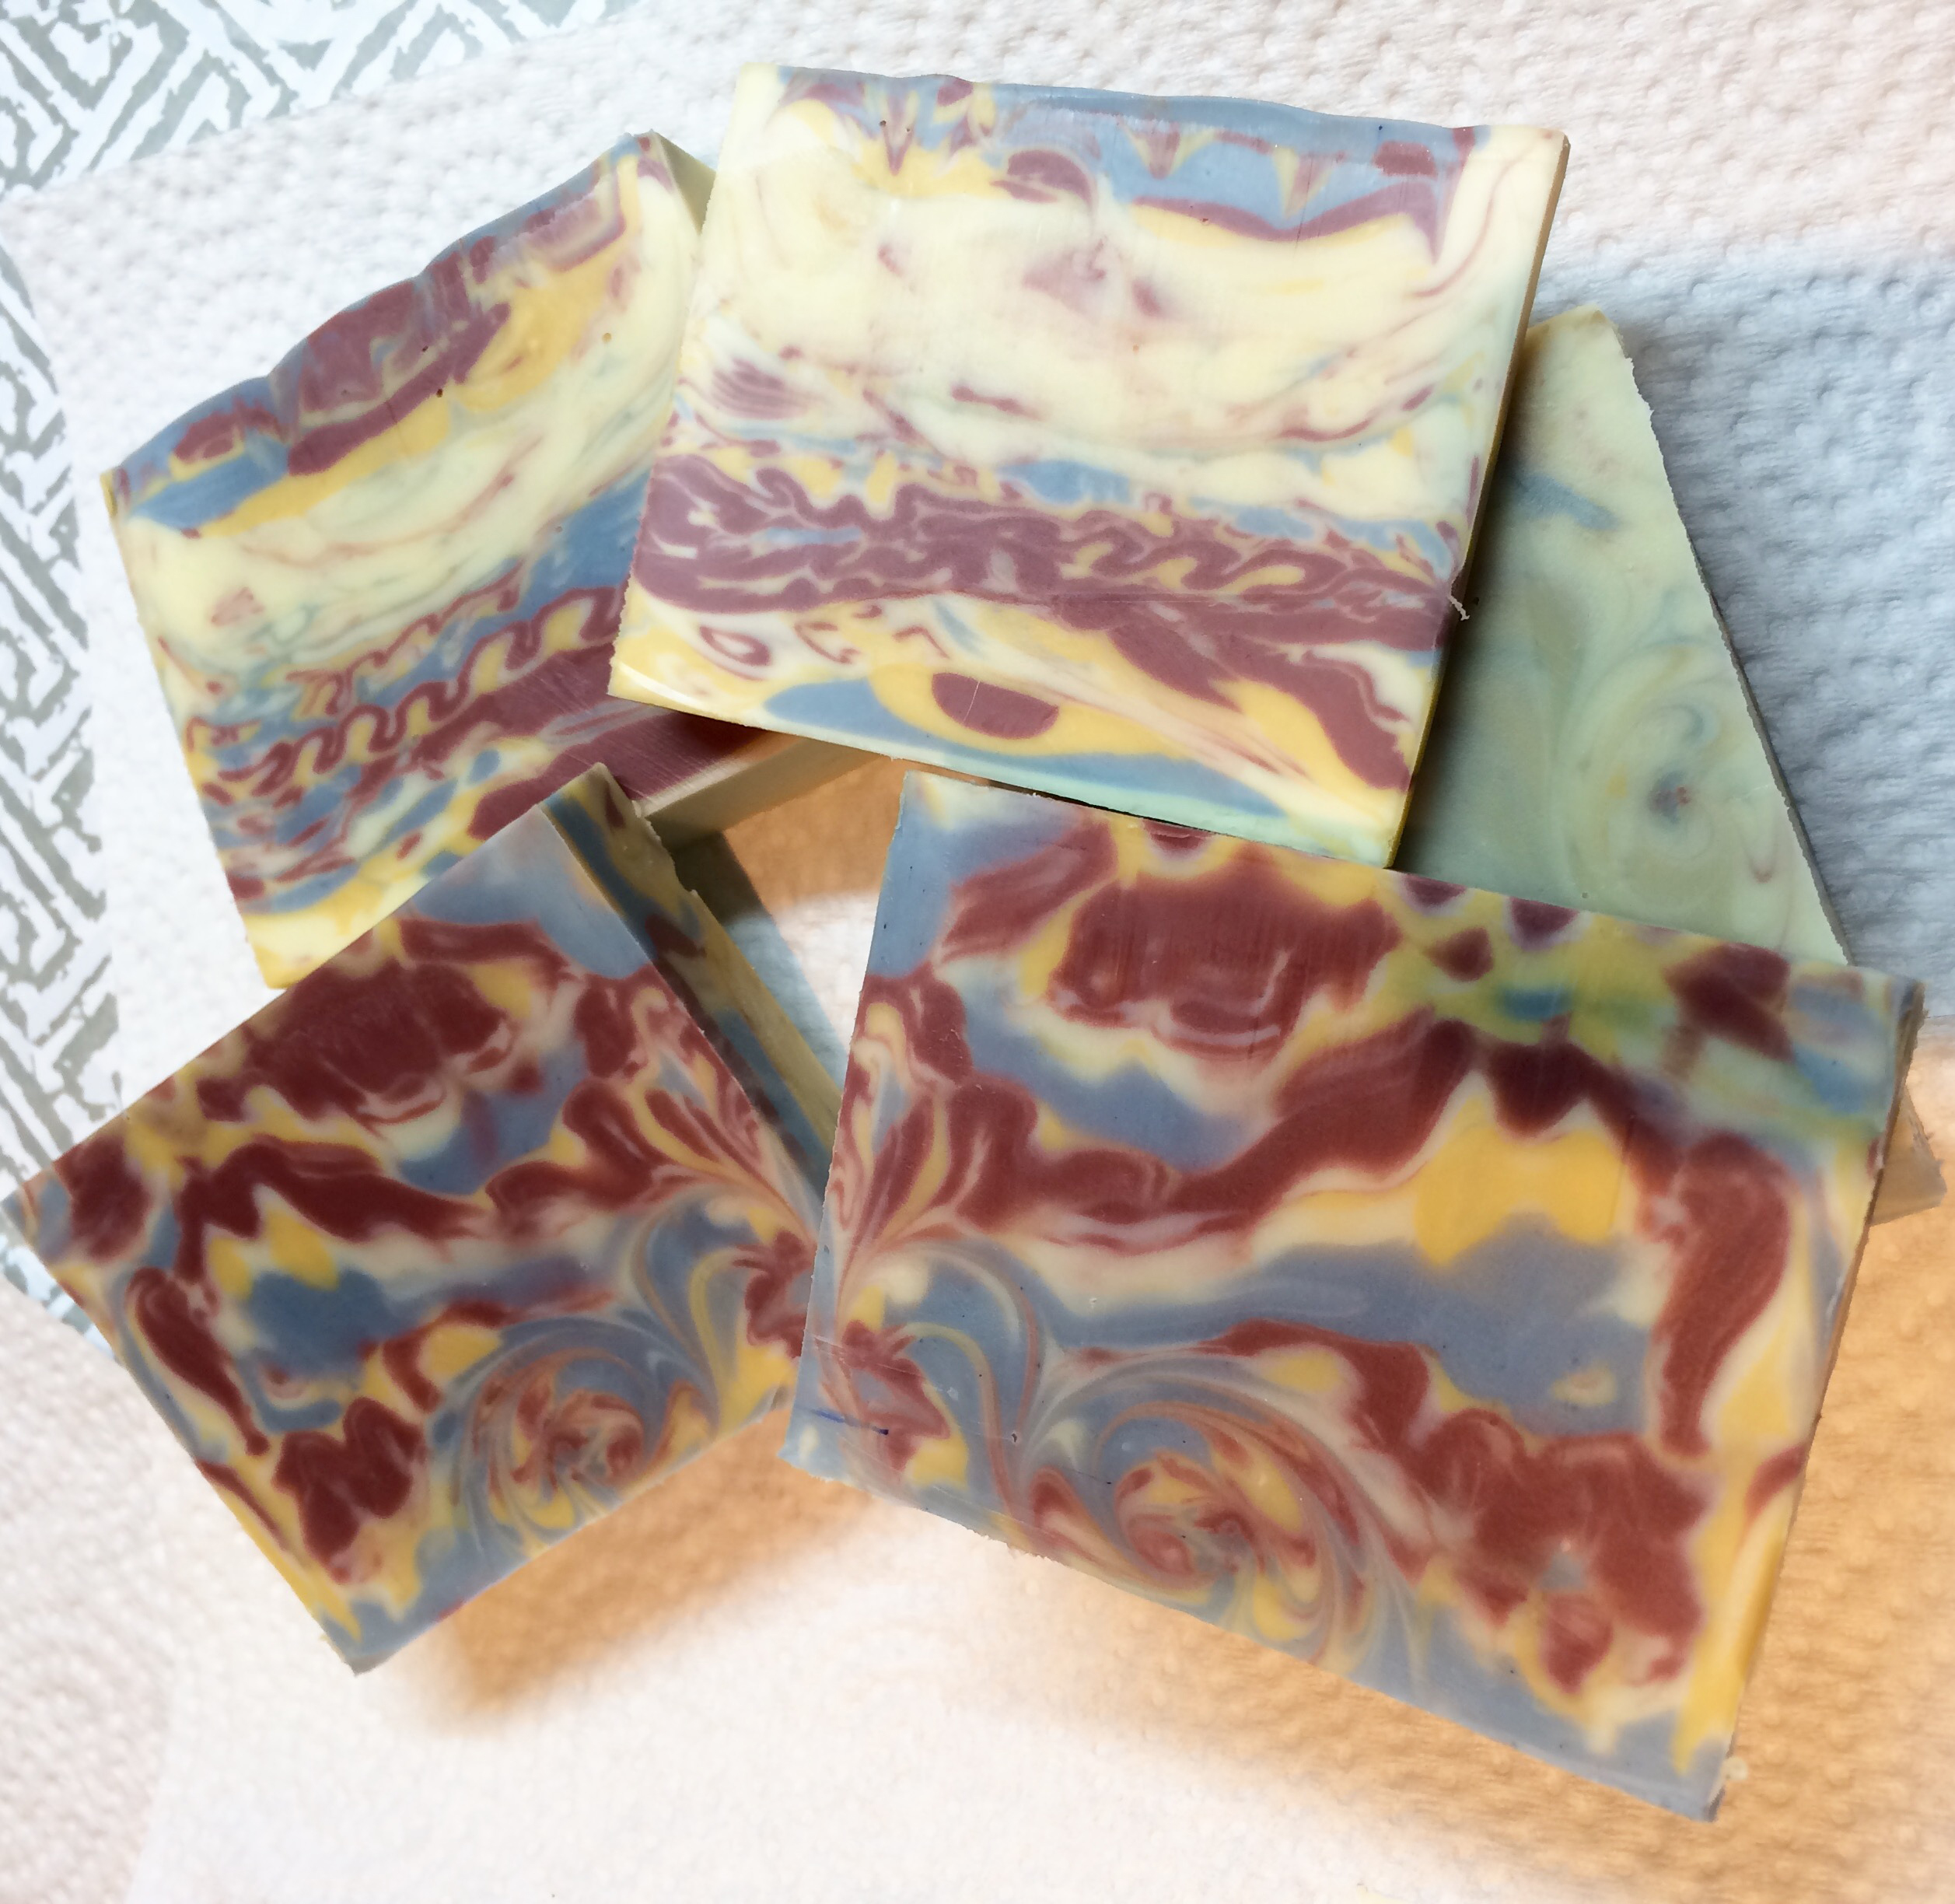 january contest collaborator soap